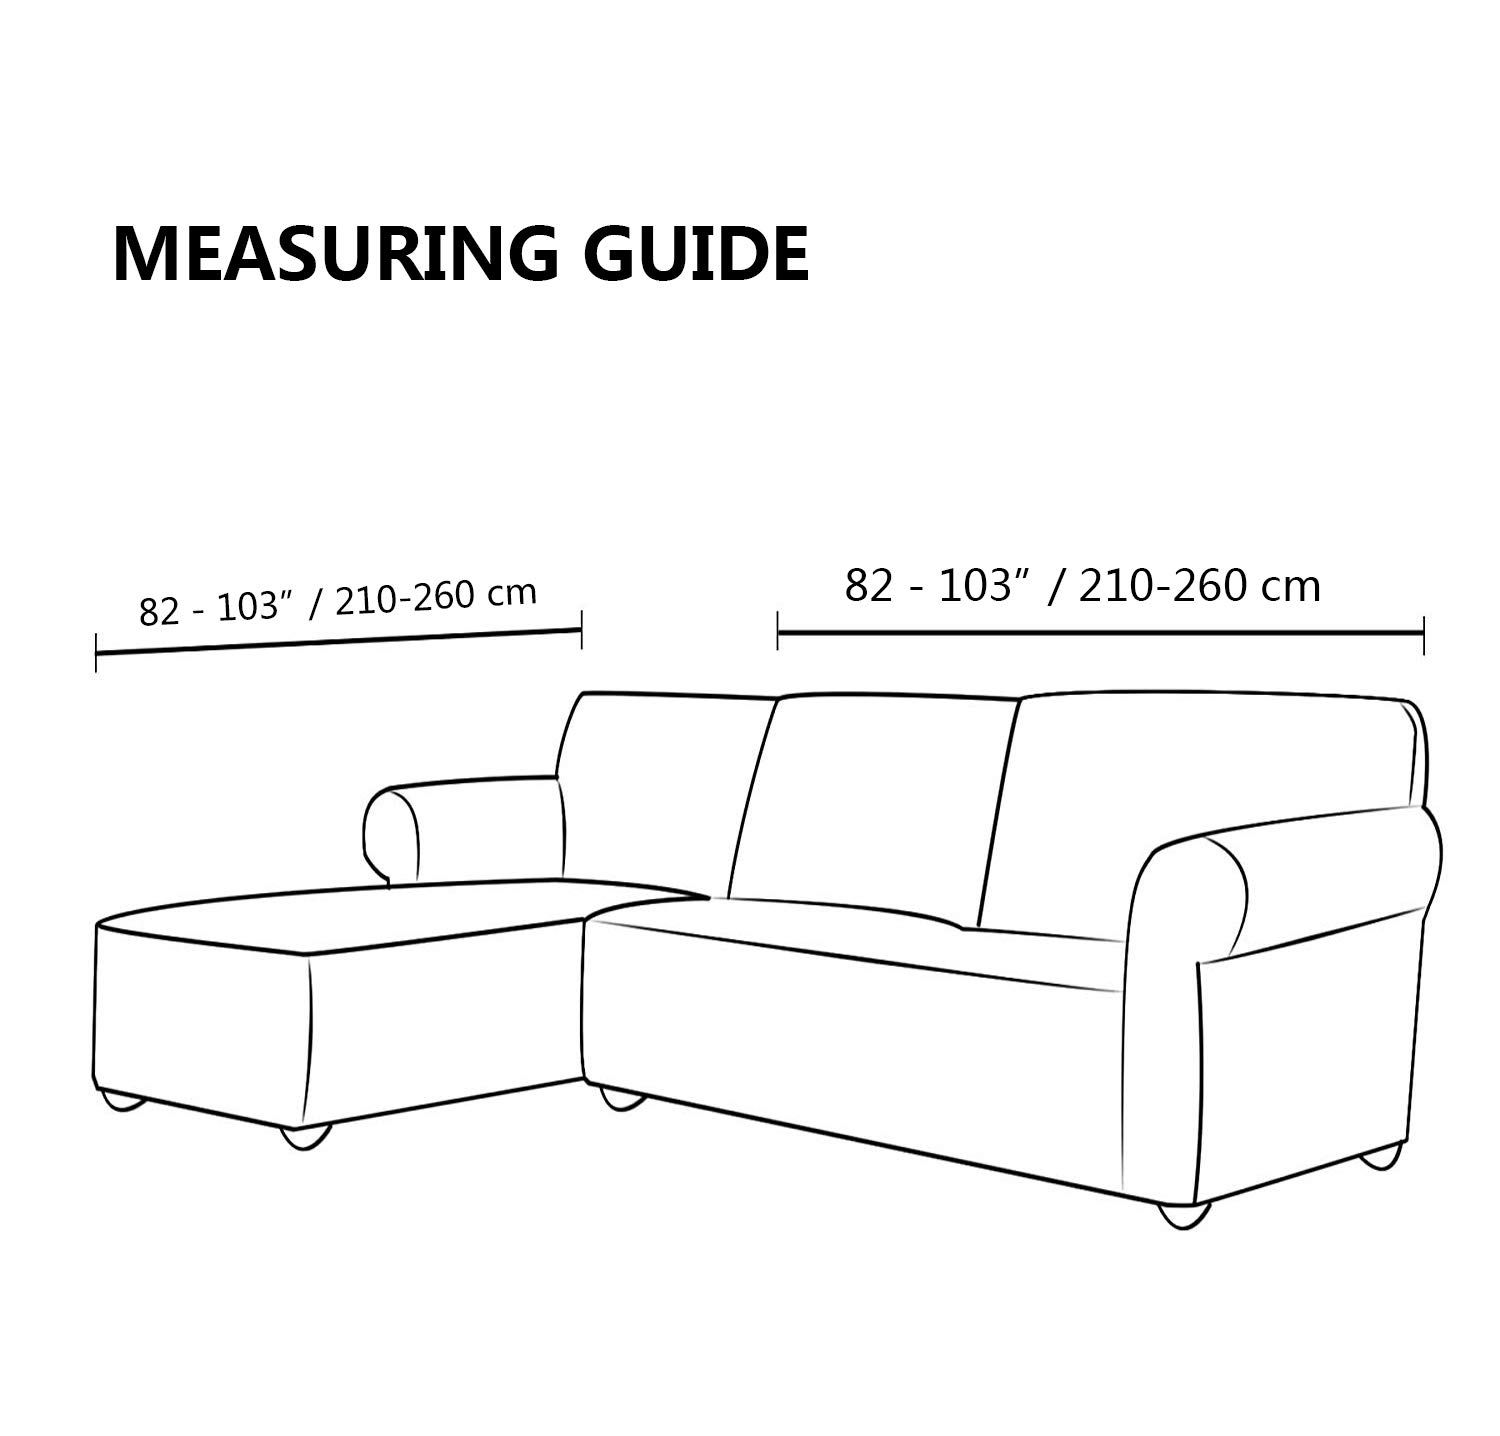 Womaco L Shape Sofa Covers Sectional Sofa Cover 2 Pcs Stretch Sofa Slipcovers For Lshape Couch Xxl Lshape Sofa Co In 2020 L Shaped Sofa Slipcovered Sofa L Shaped Couch